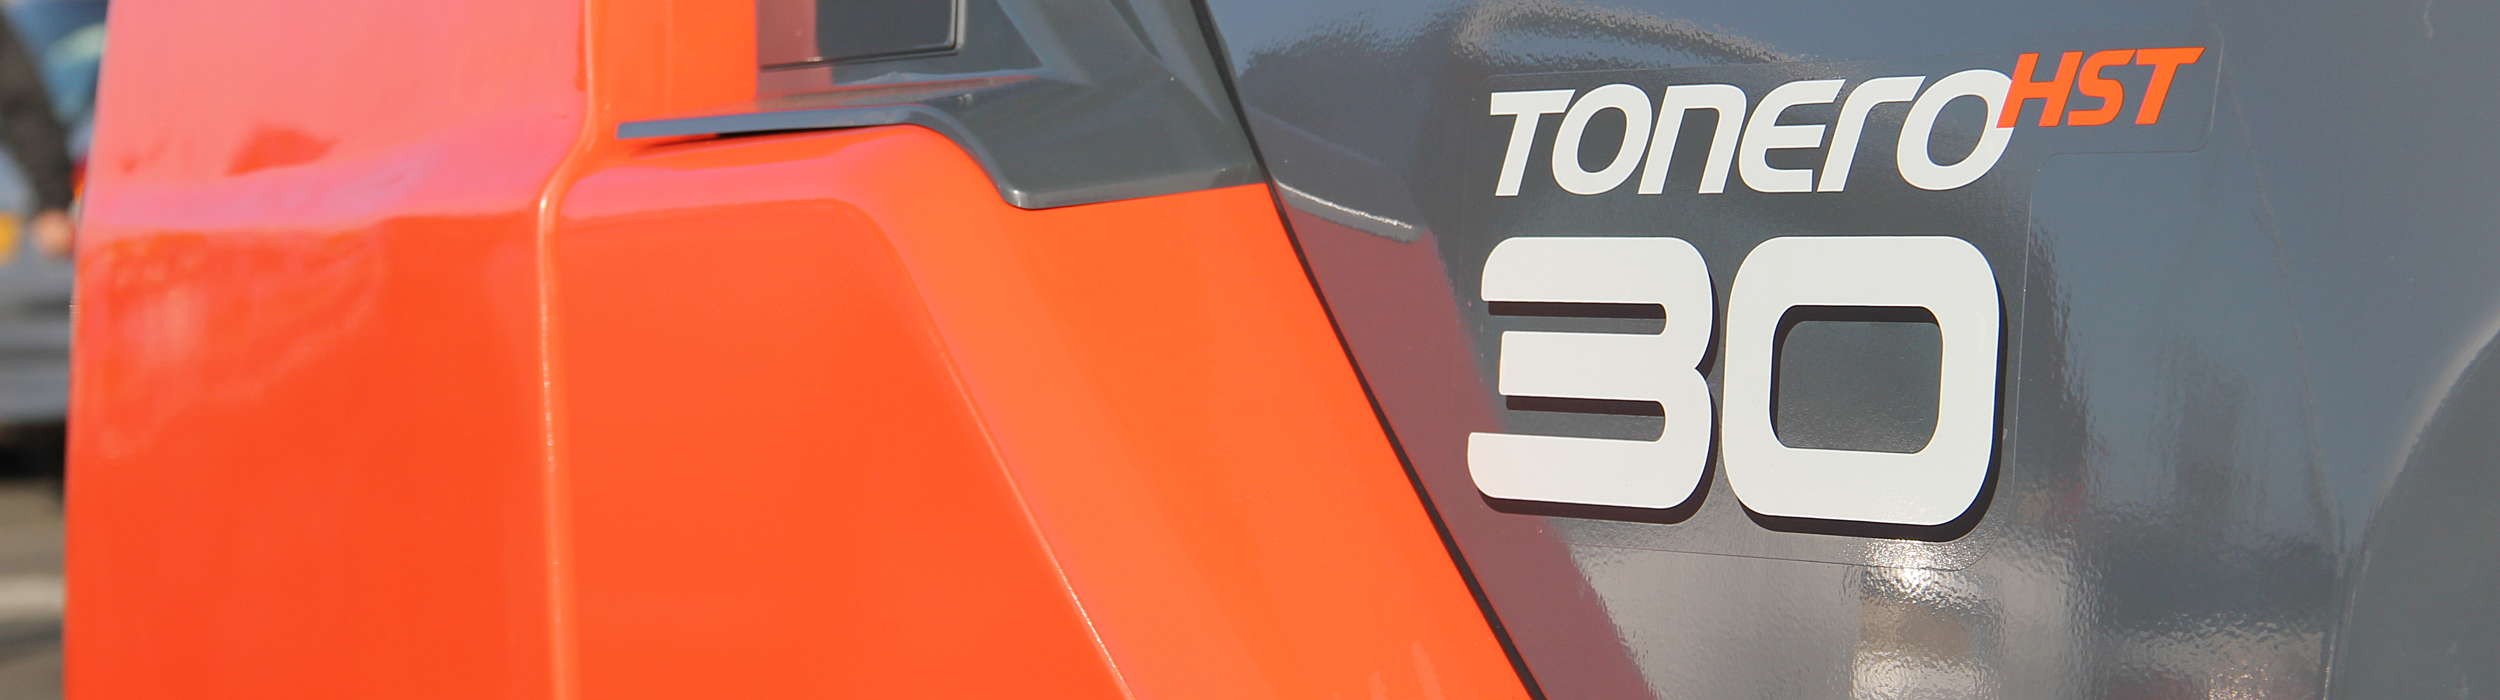 Close up on Tonero logo on truck